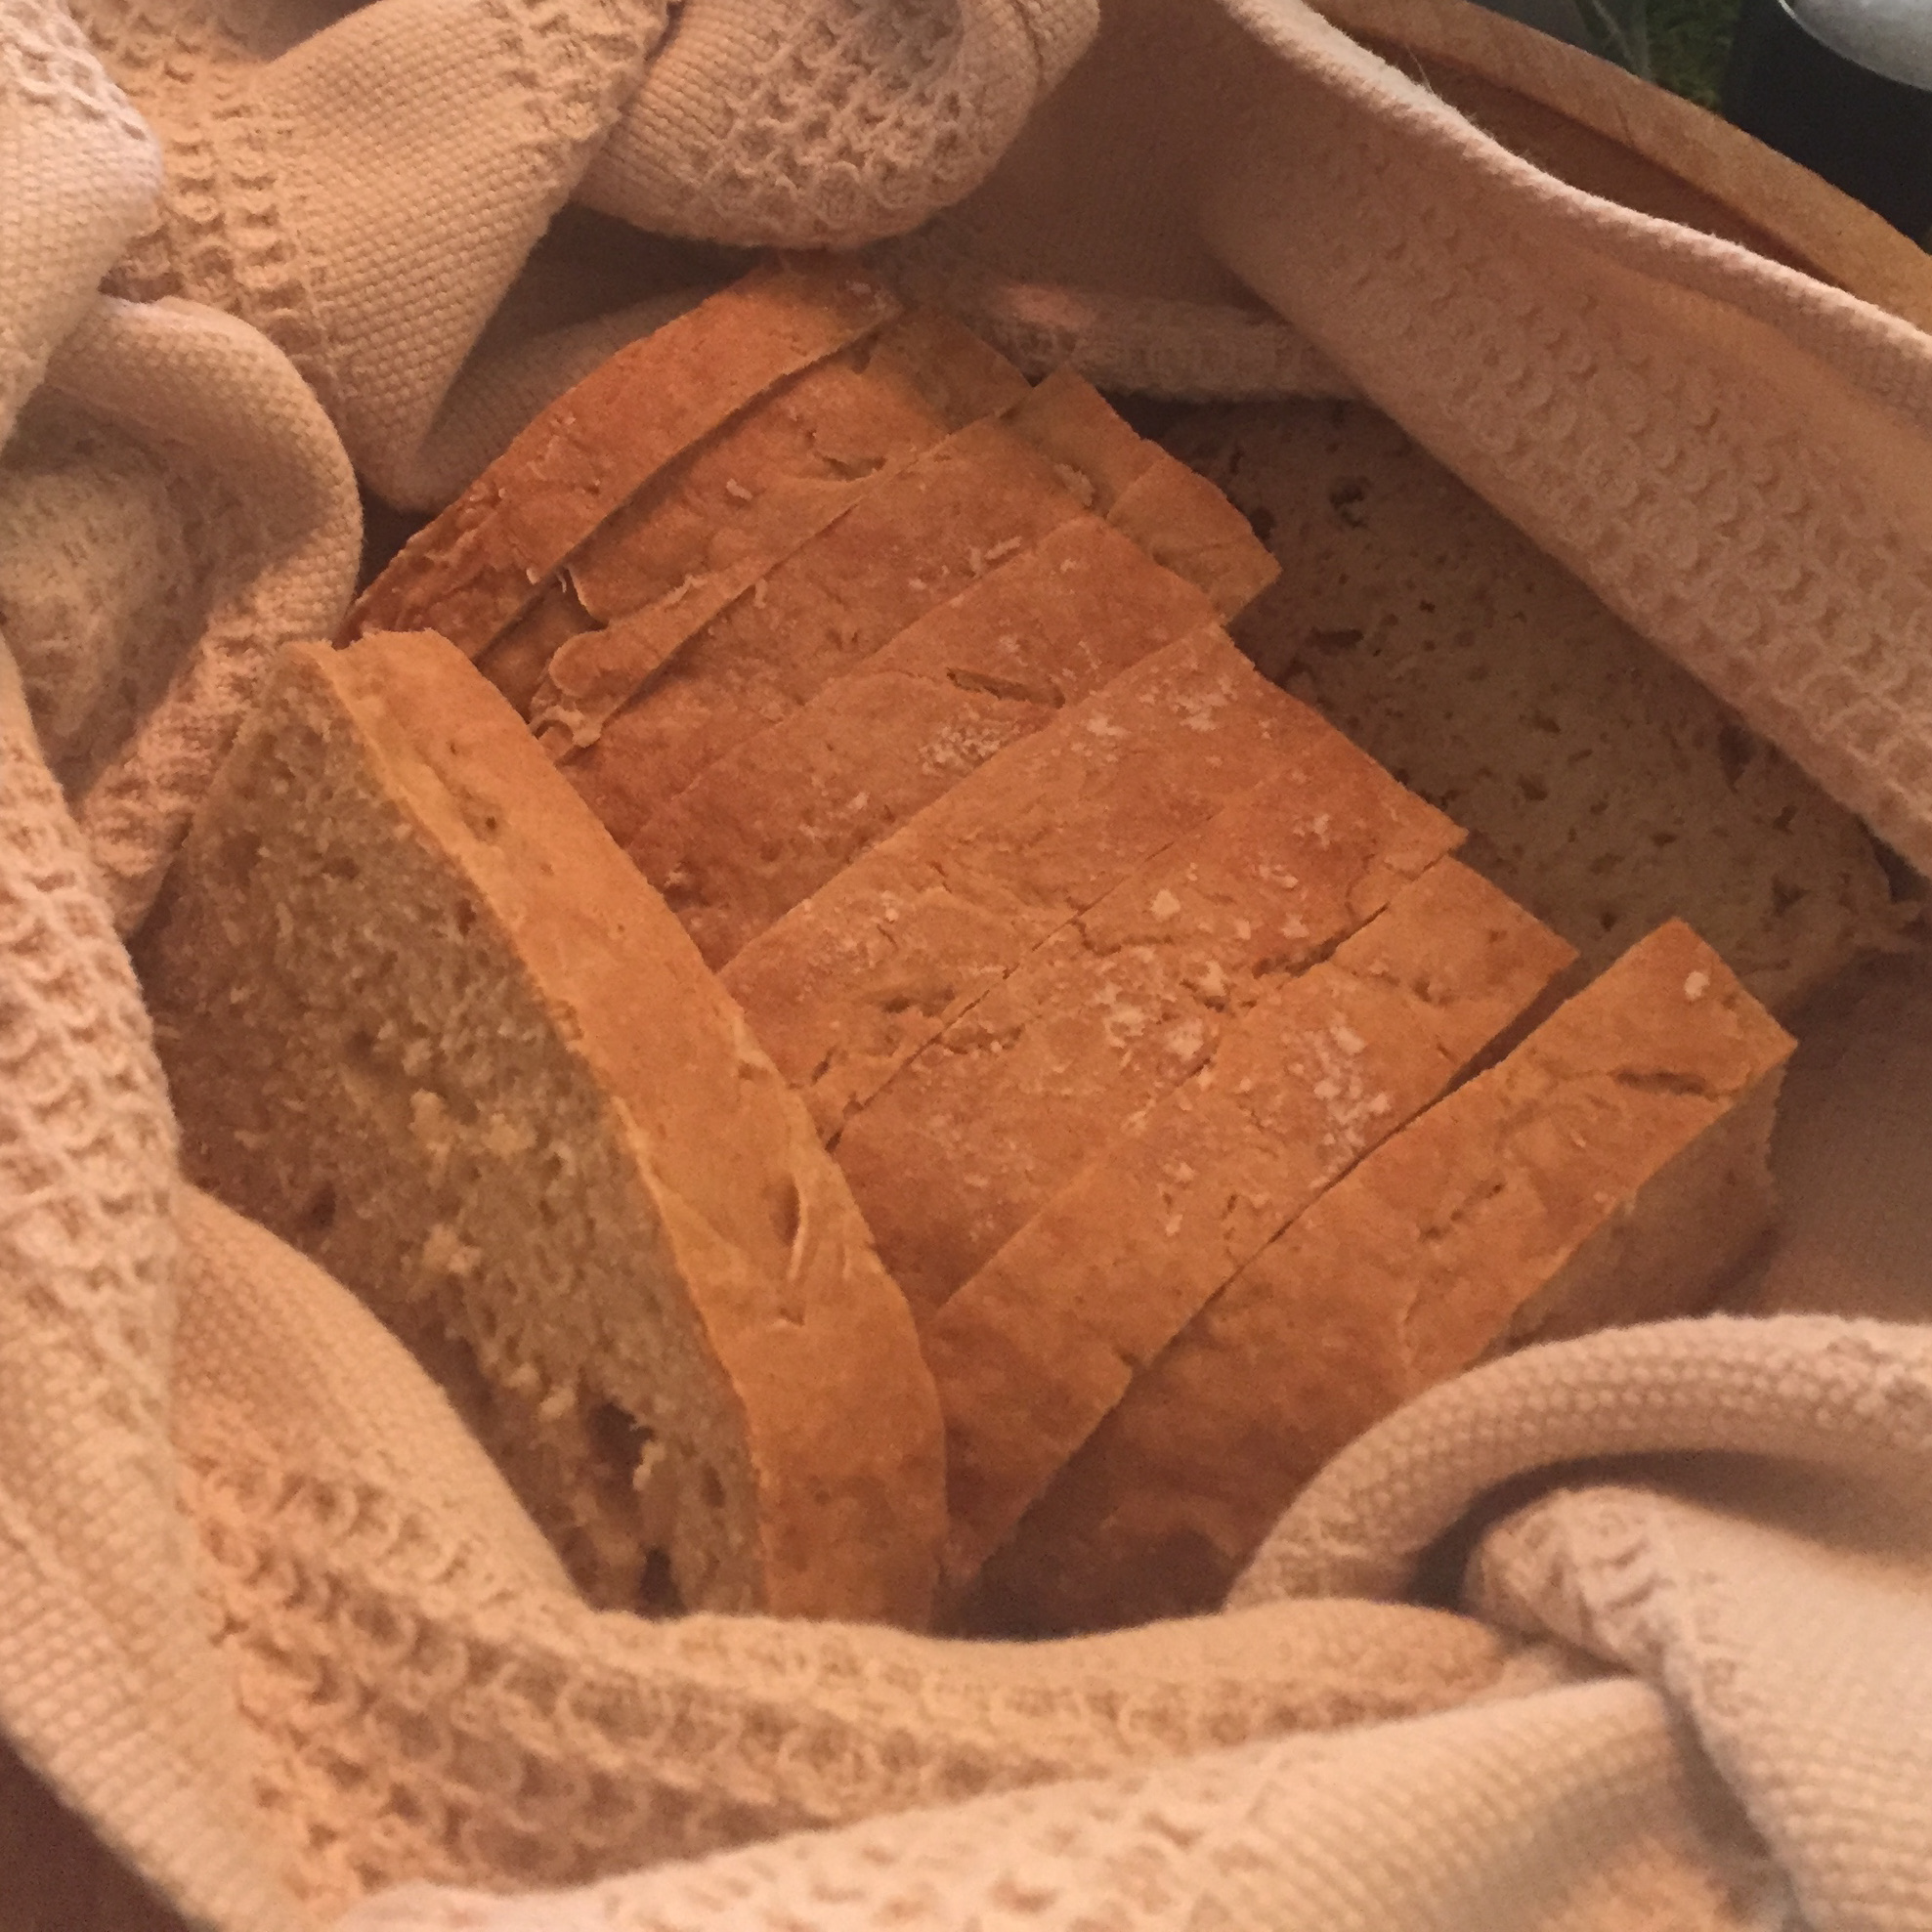 Irish Soda Bread at St. Patrick's Day dinner